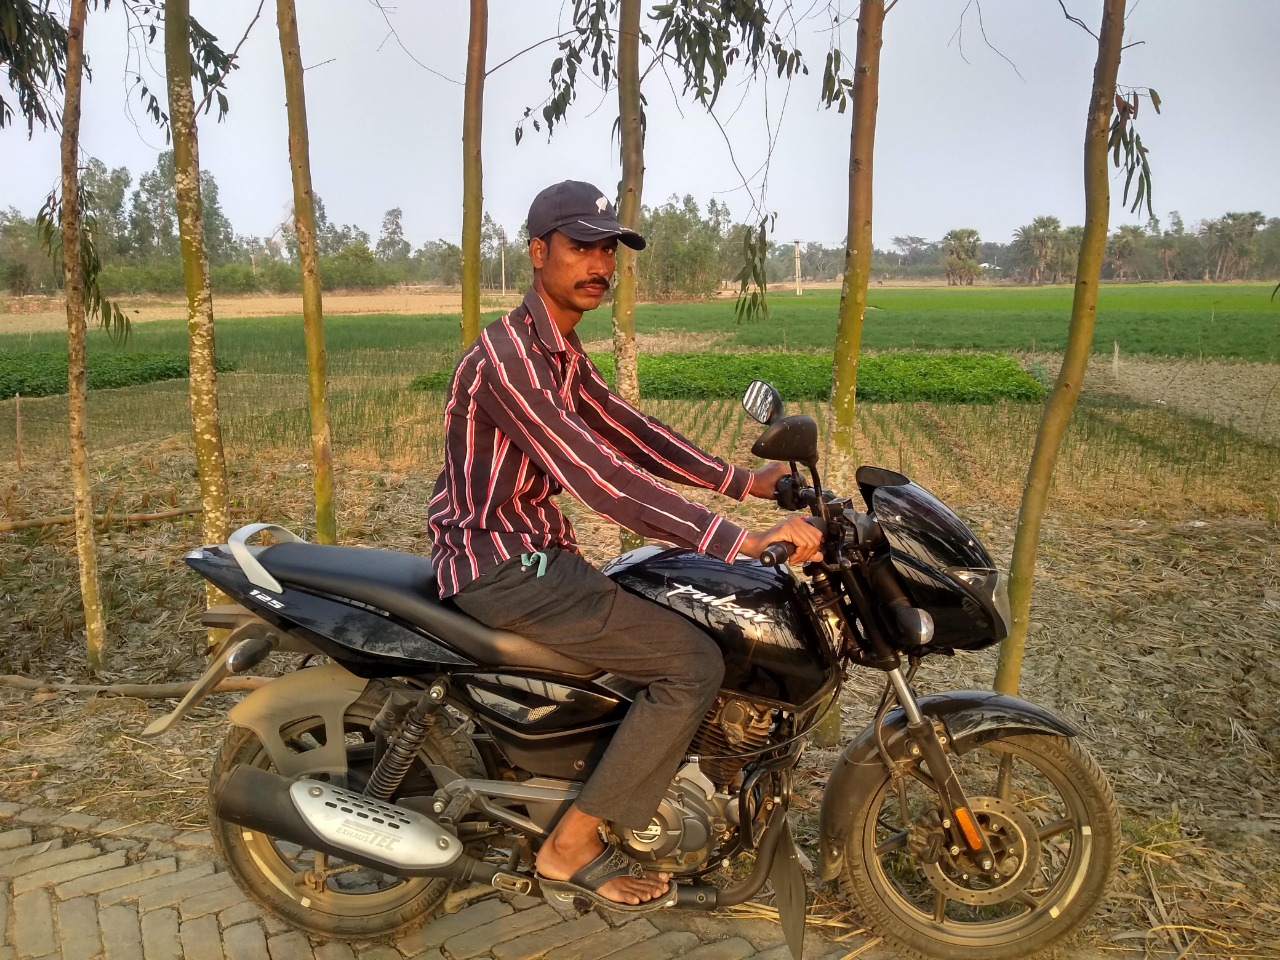 When I visited K-plot in February, Alauddin was waiting with his latest acquisition, a motorbike